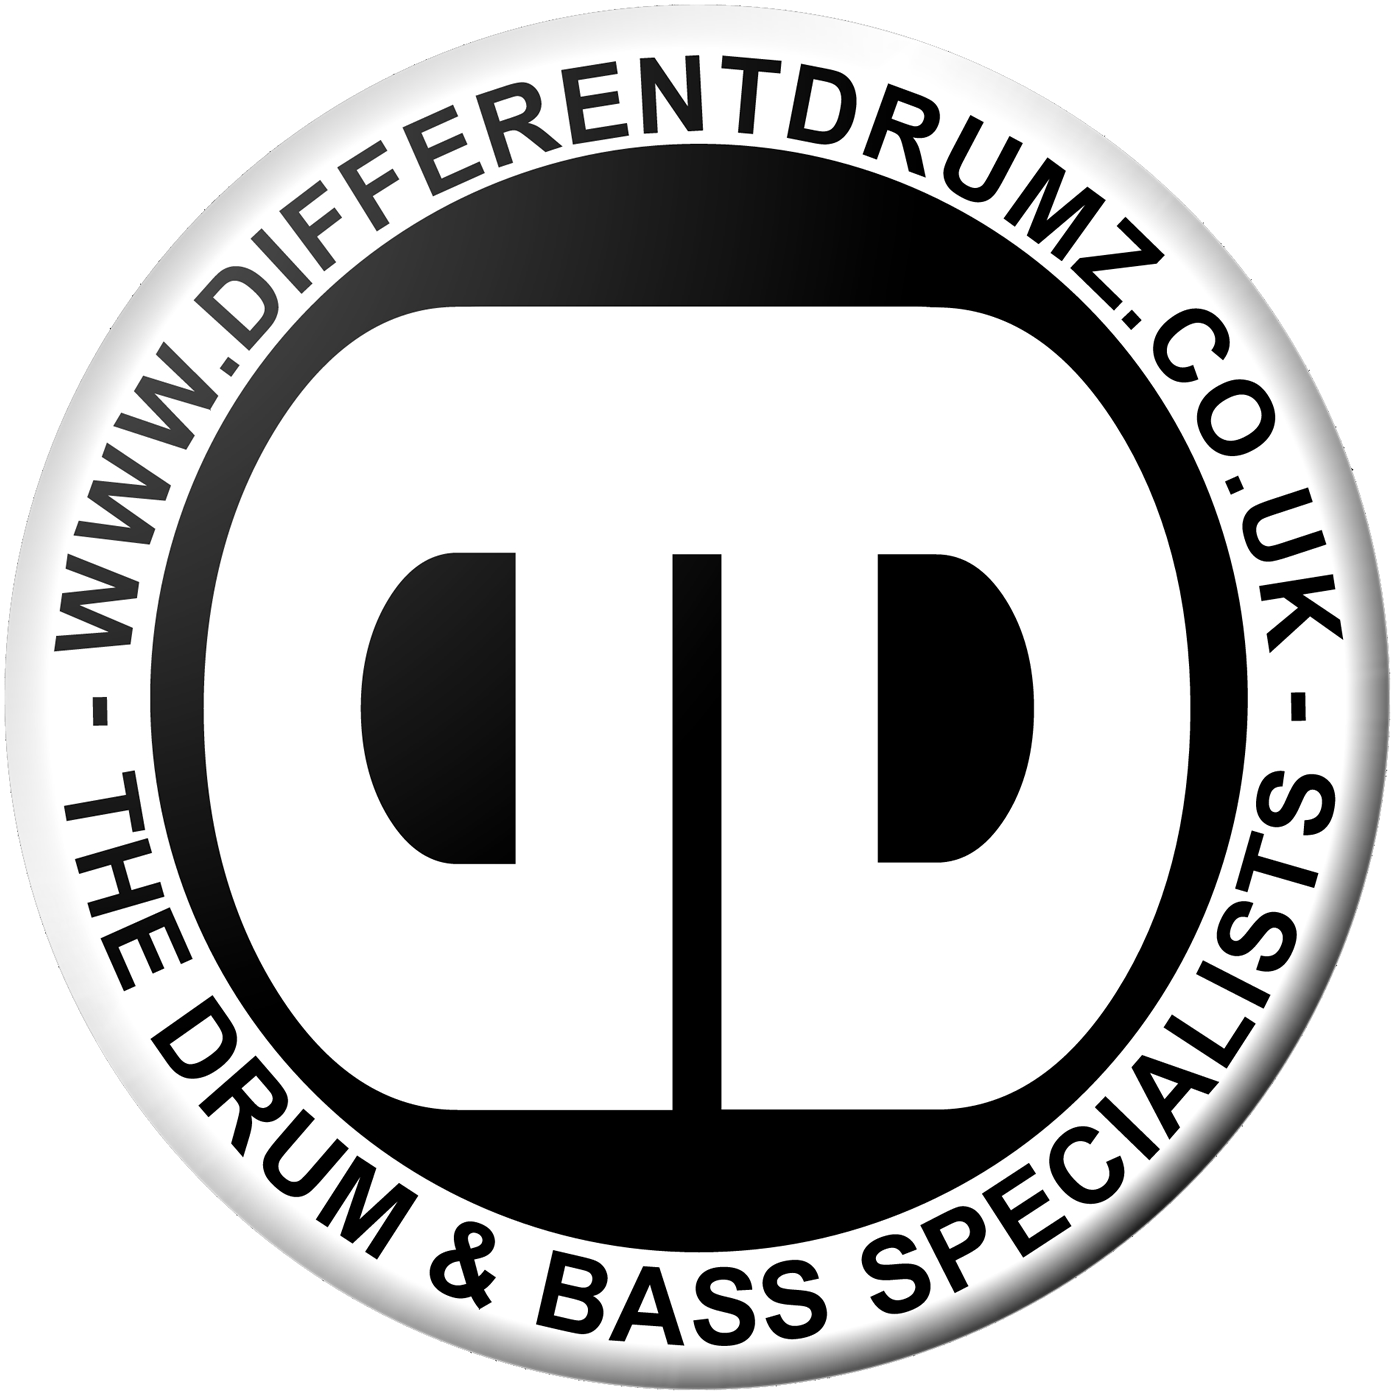 The Different Drumz DnB Podcast Series